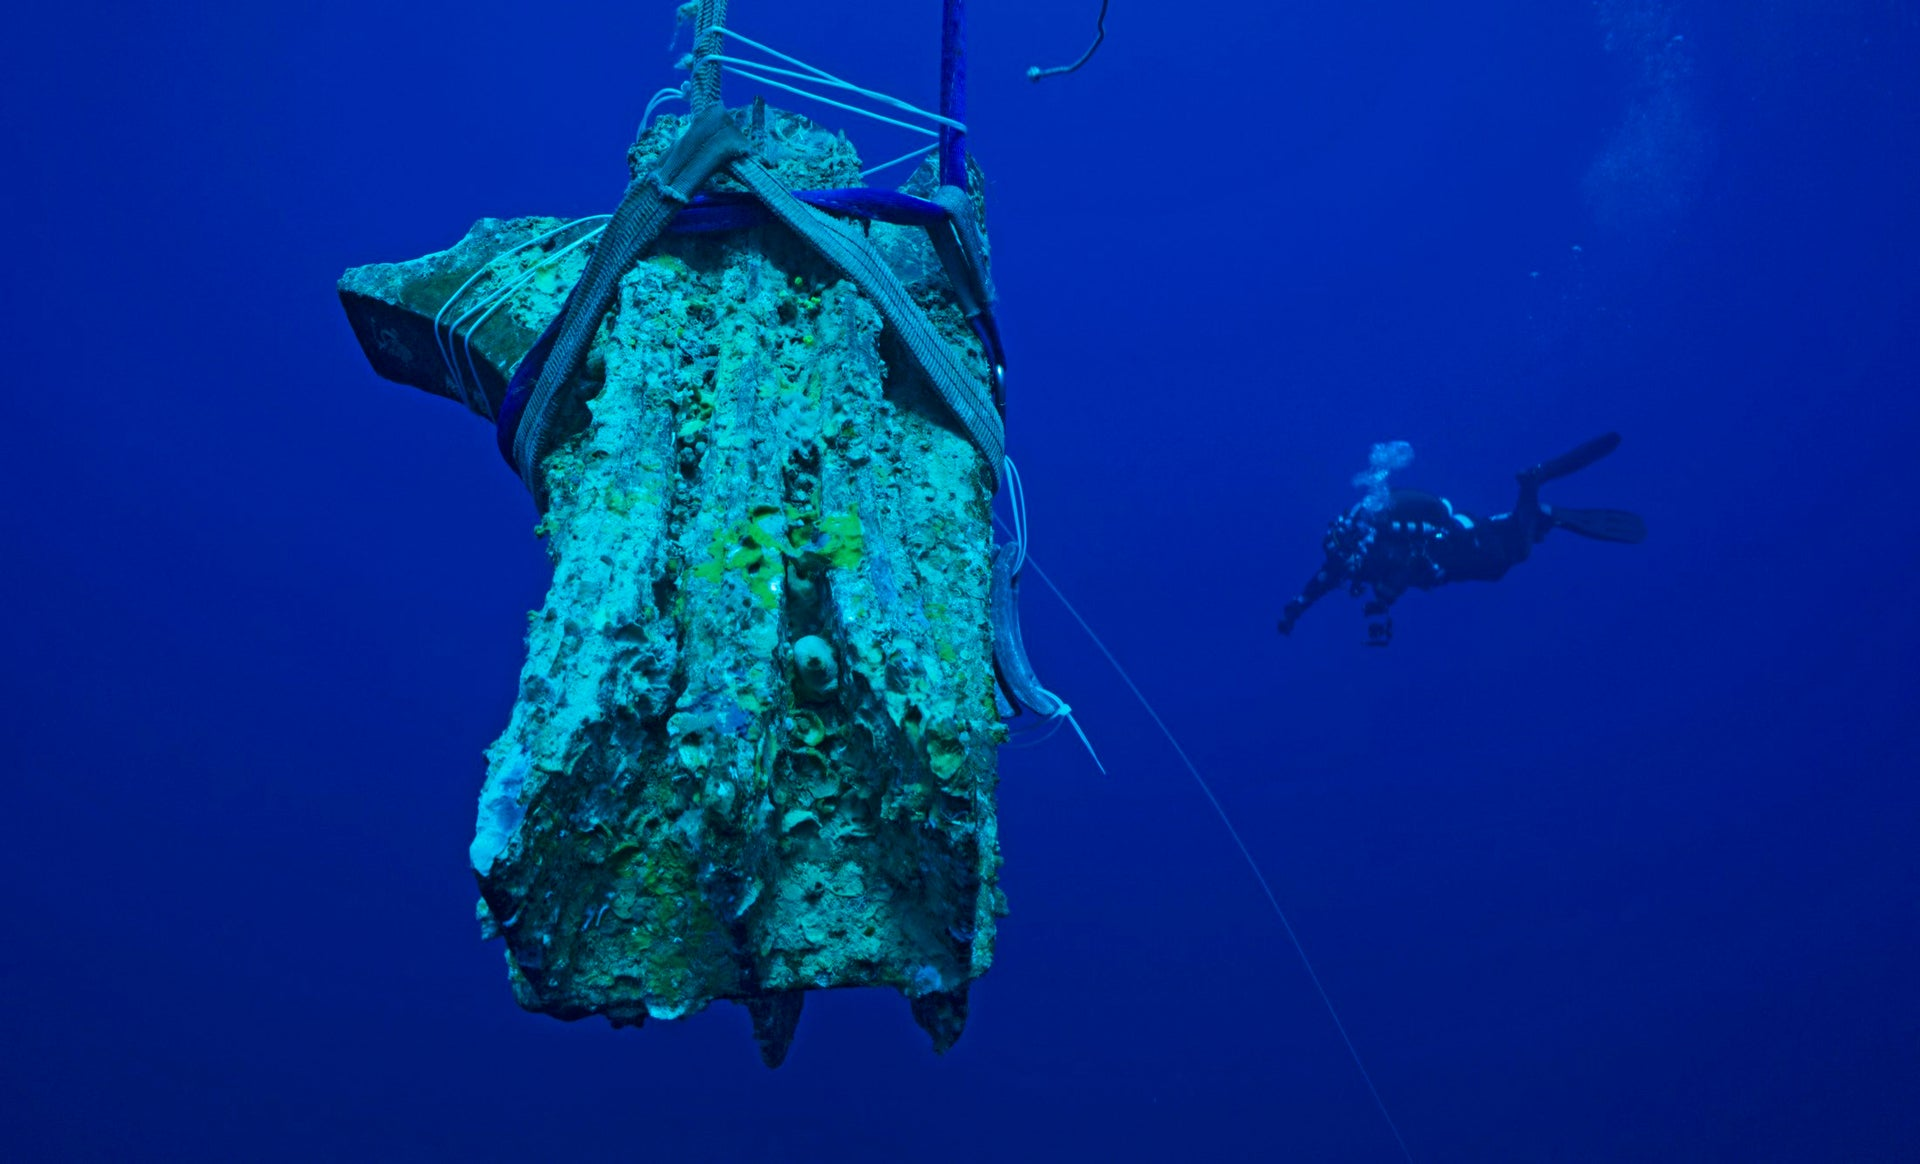 Raising a bronze ram found by diving archaeologists at Egadi, Silicy from First Punic War. The foreground shows the ram, encrusted after over 2,000 years some 120 meters under the sea, strapped and being raised. In the background of the deep blue sea, we can see a diver.